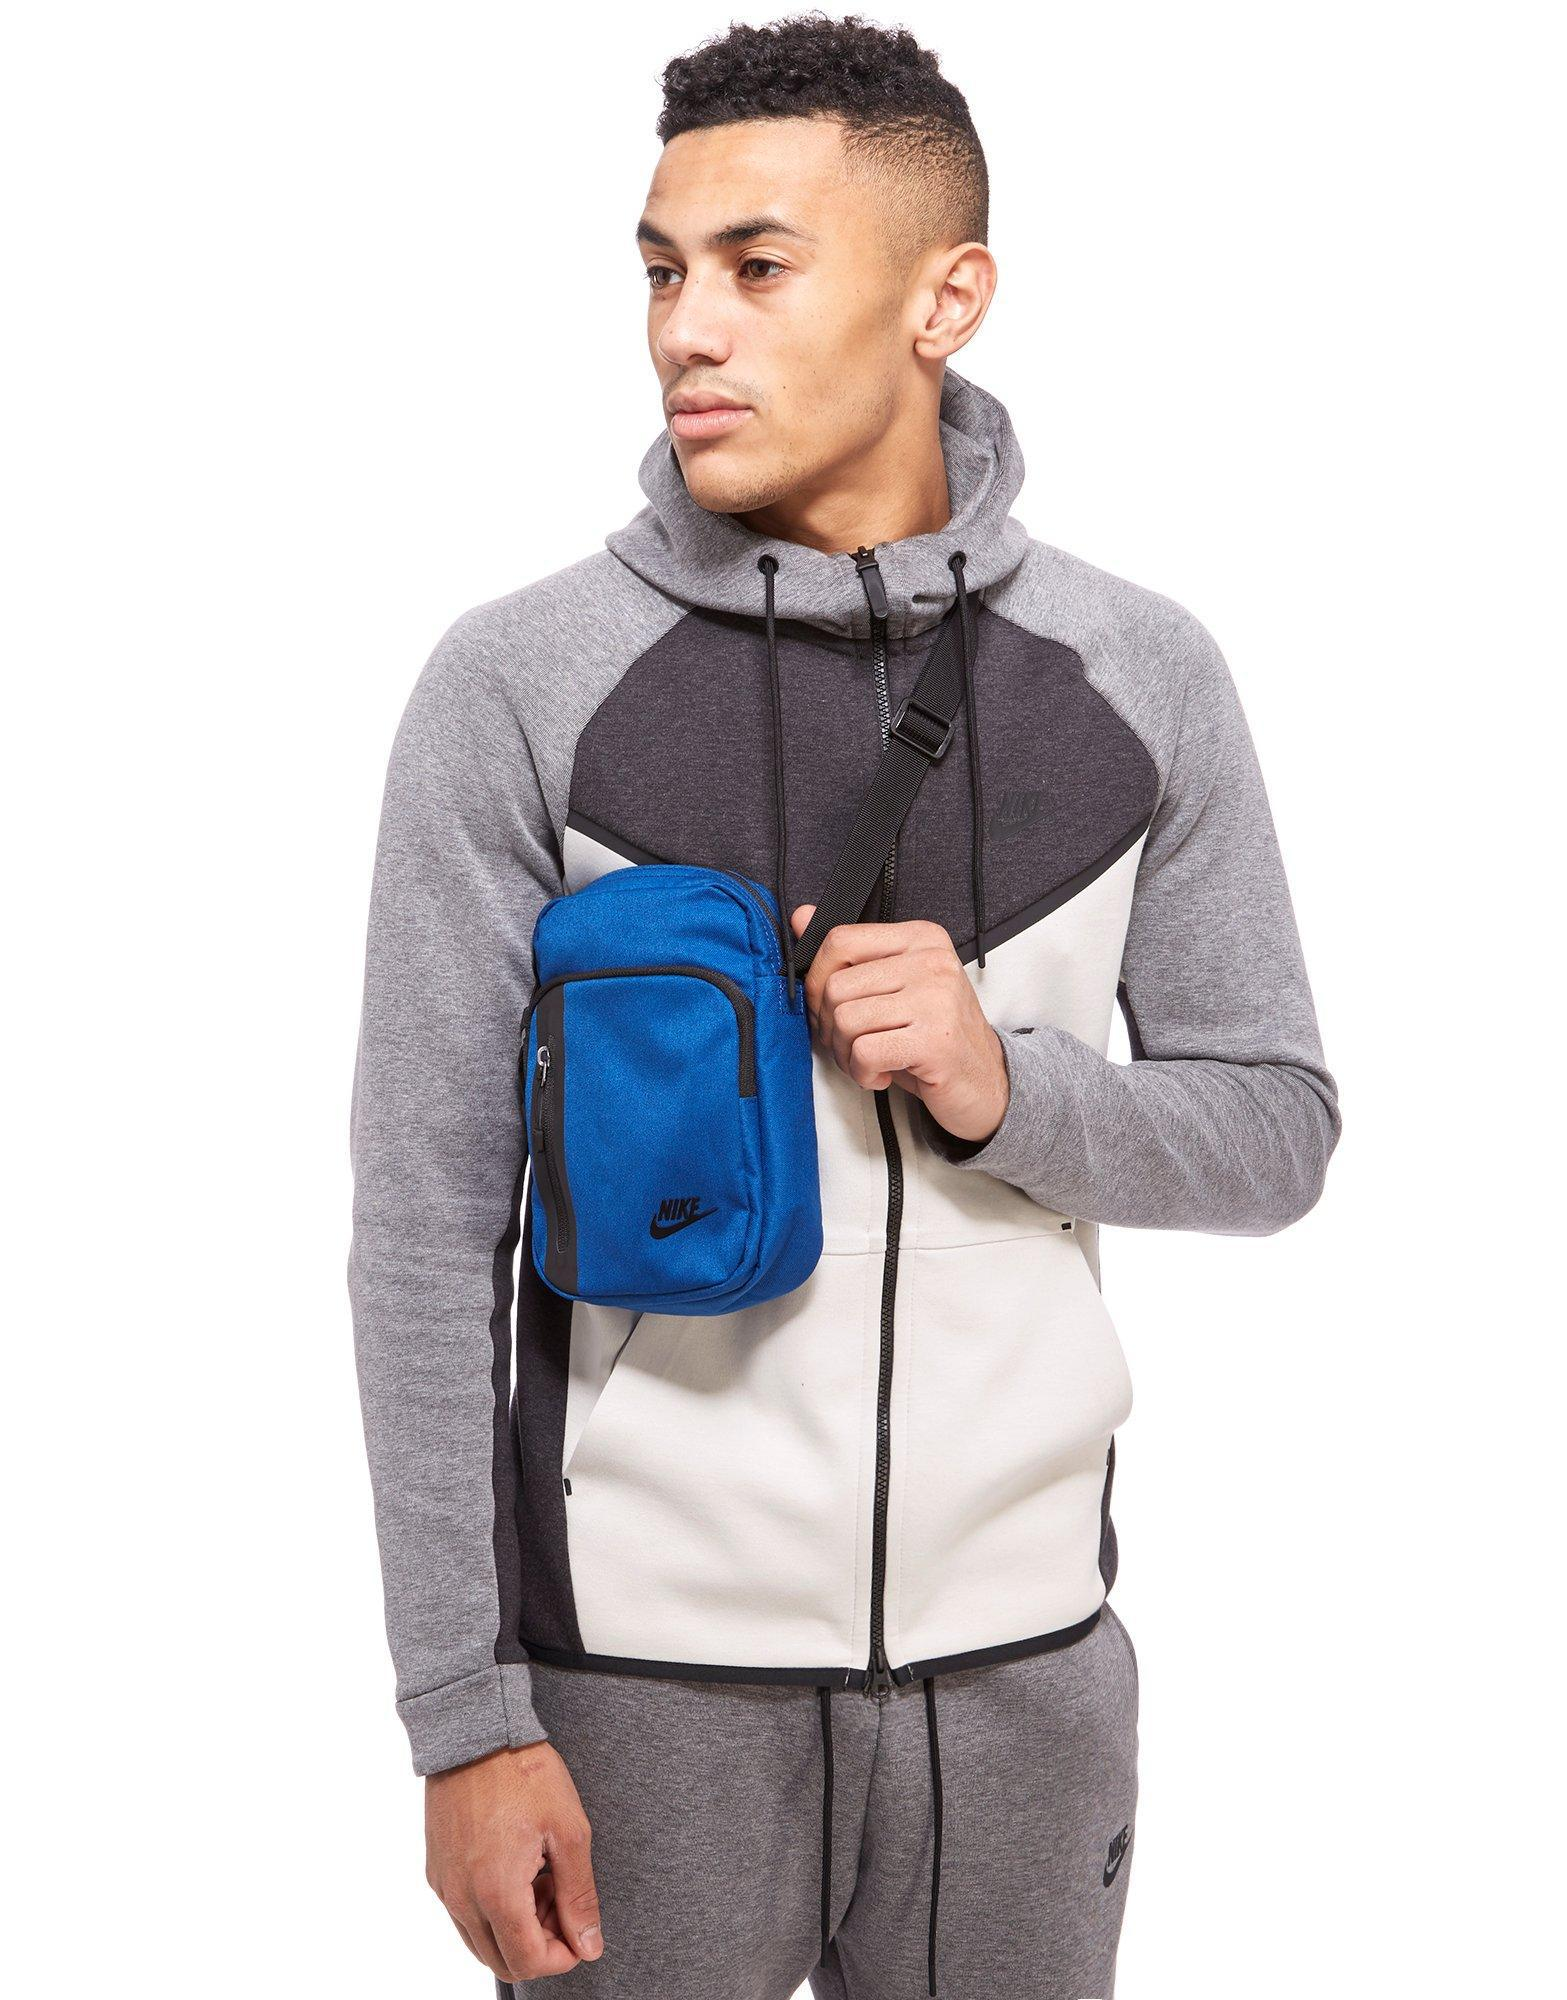 c89fc8291617 Lyst - Nike Core Small Items 3.0 Pouch Bag in Blue for Men